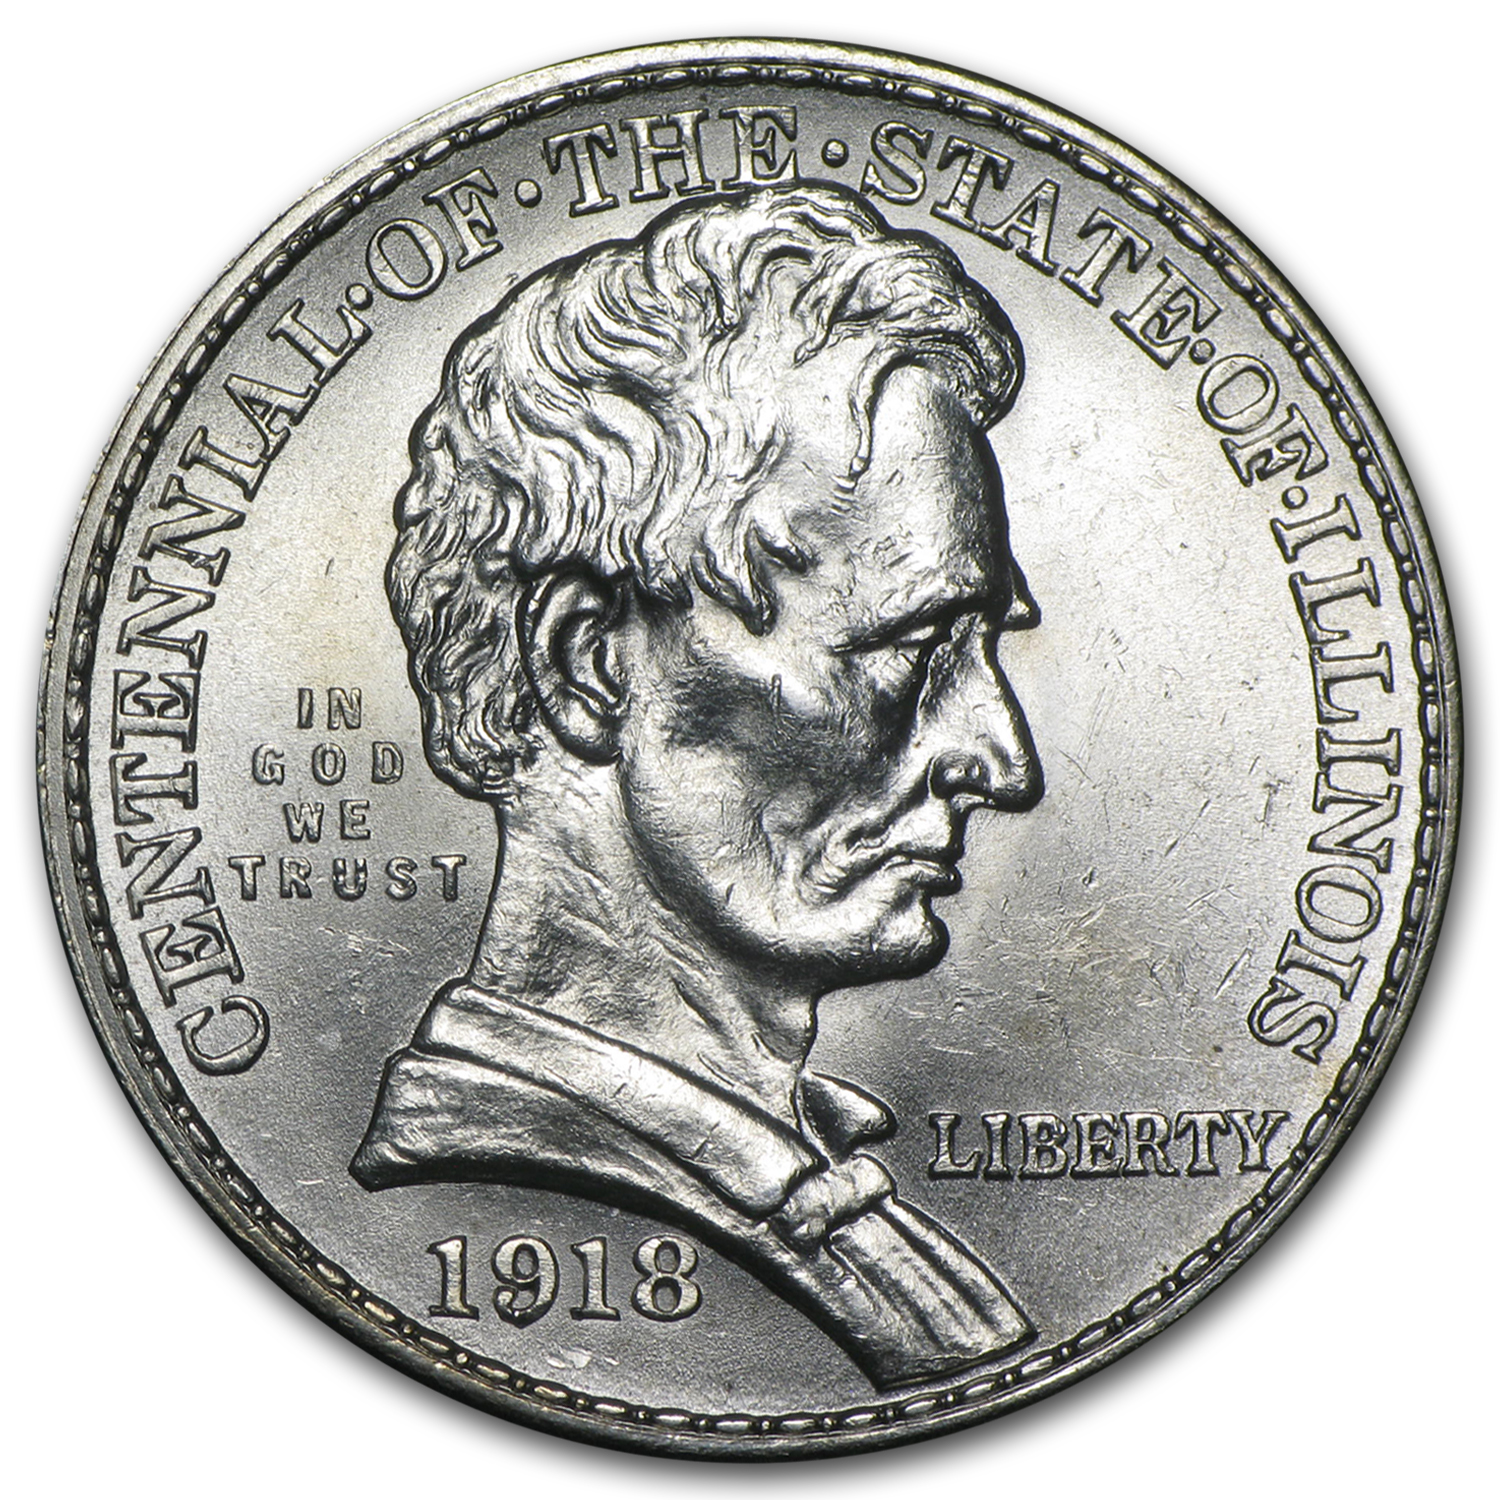 1918 Lincoln Commemorative Half Dollar BU